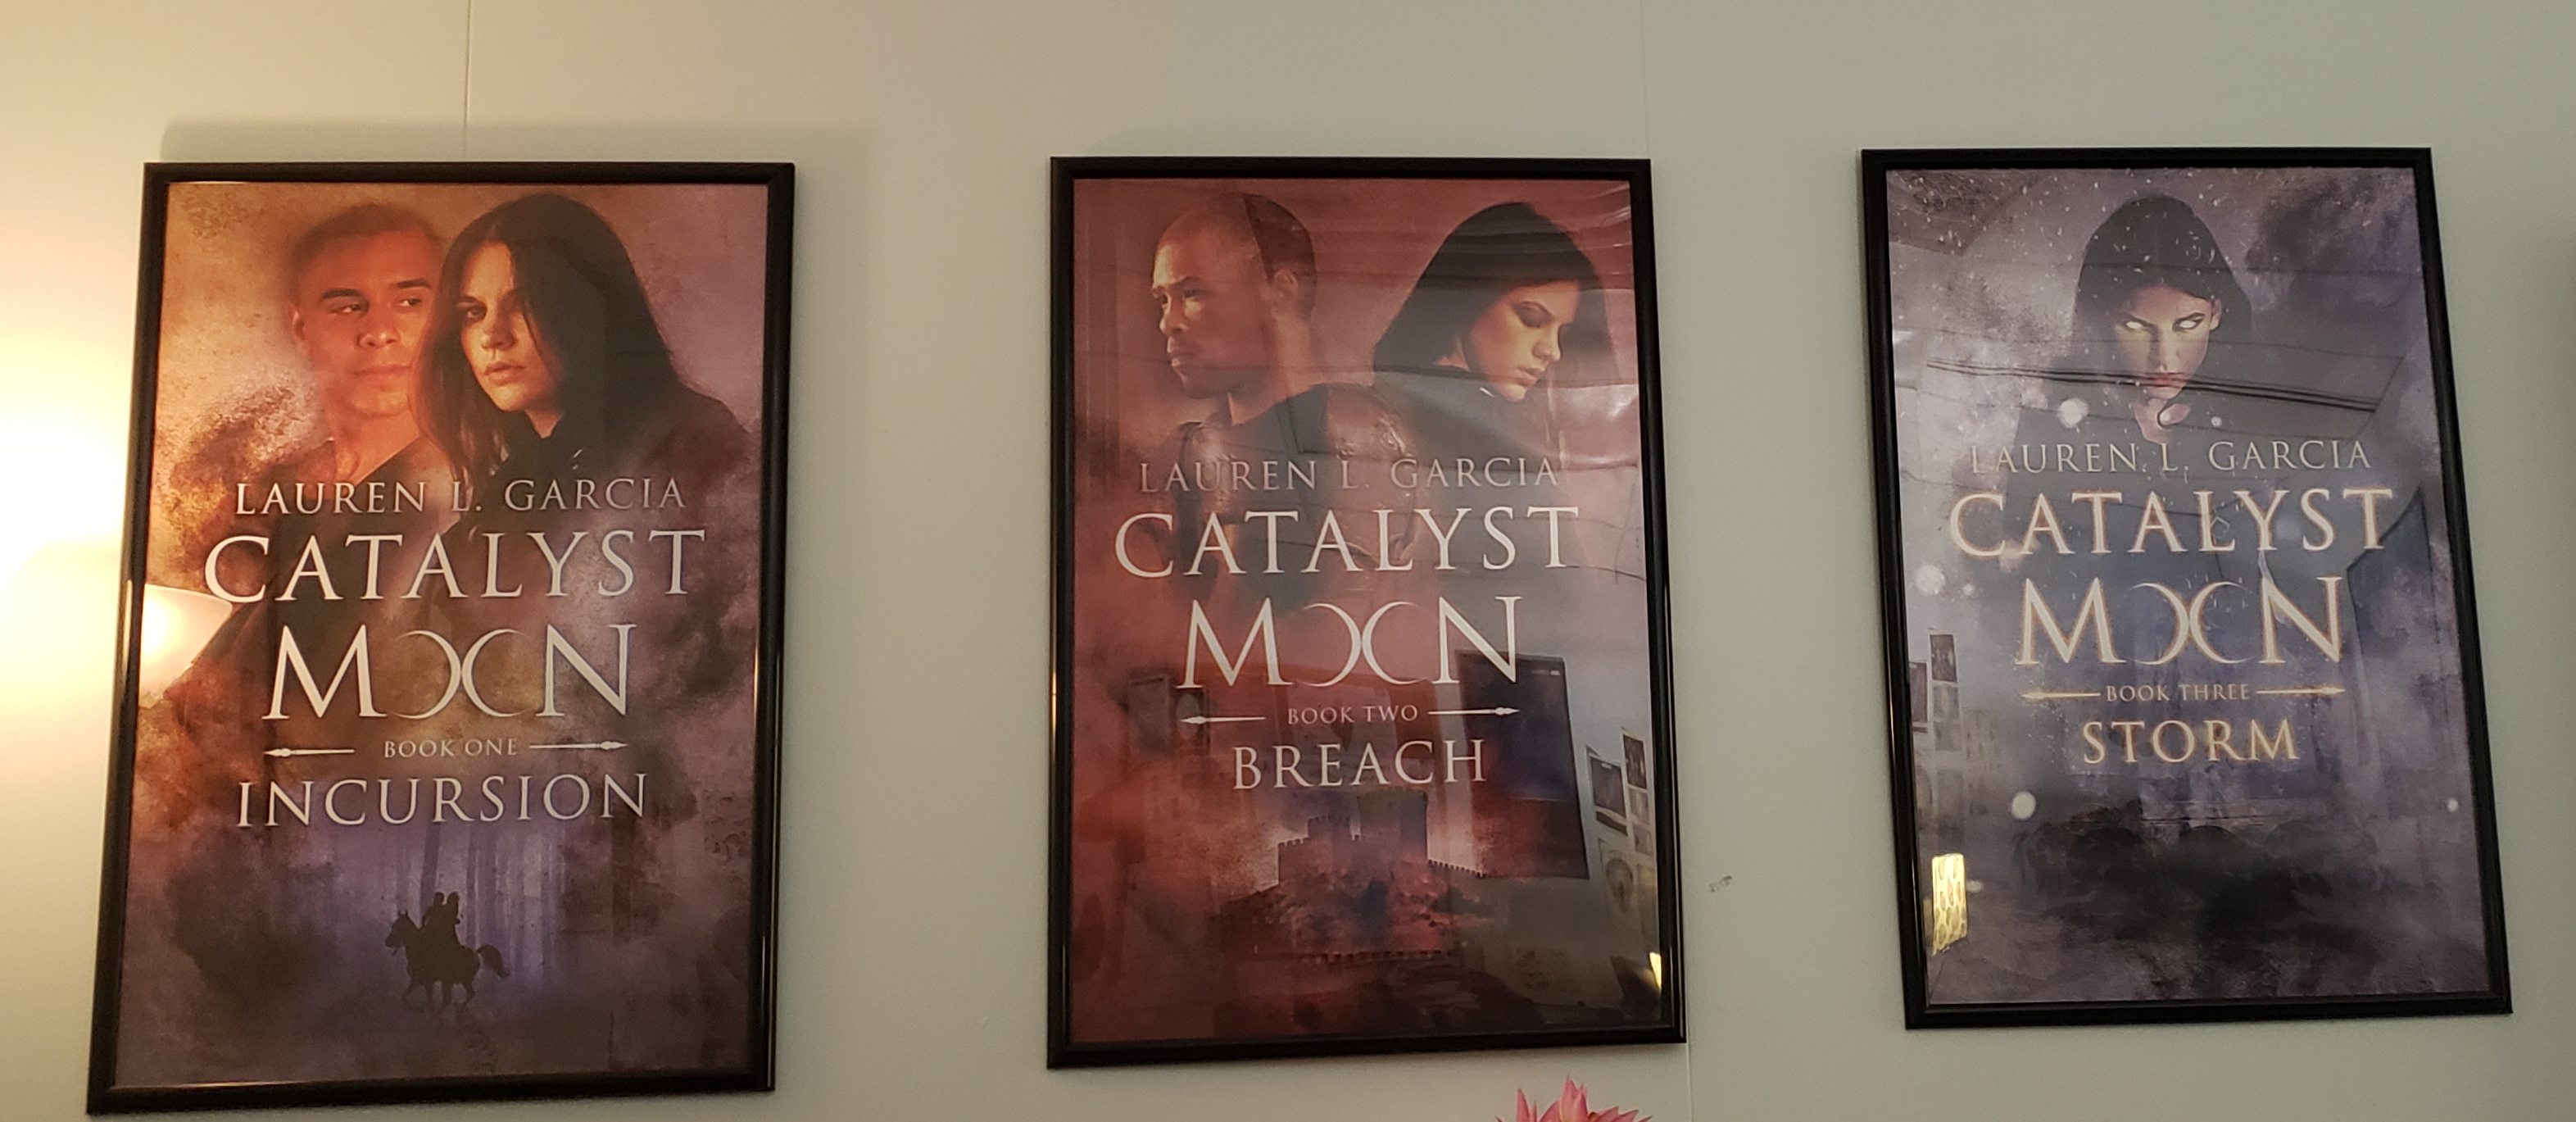 Picture of all three Catalyst Moon book covers on a wall in the author's office.